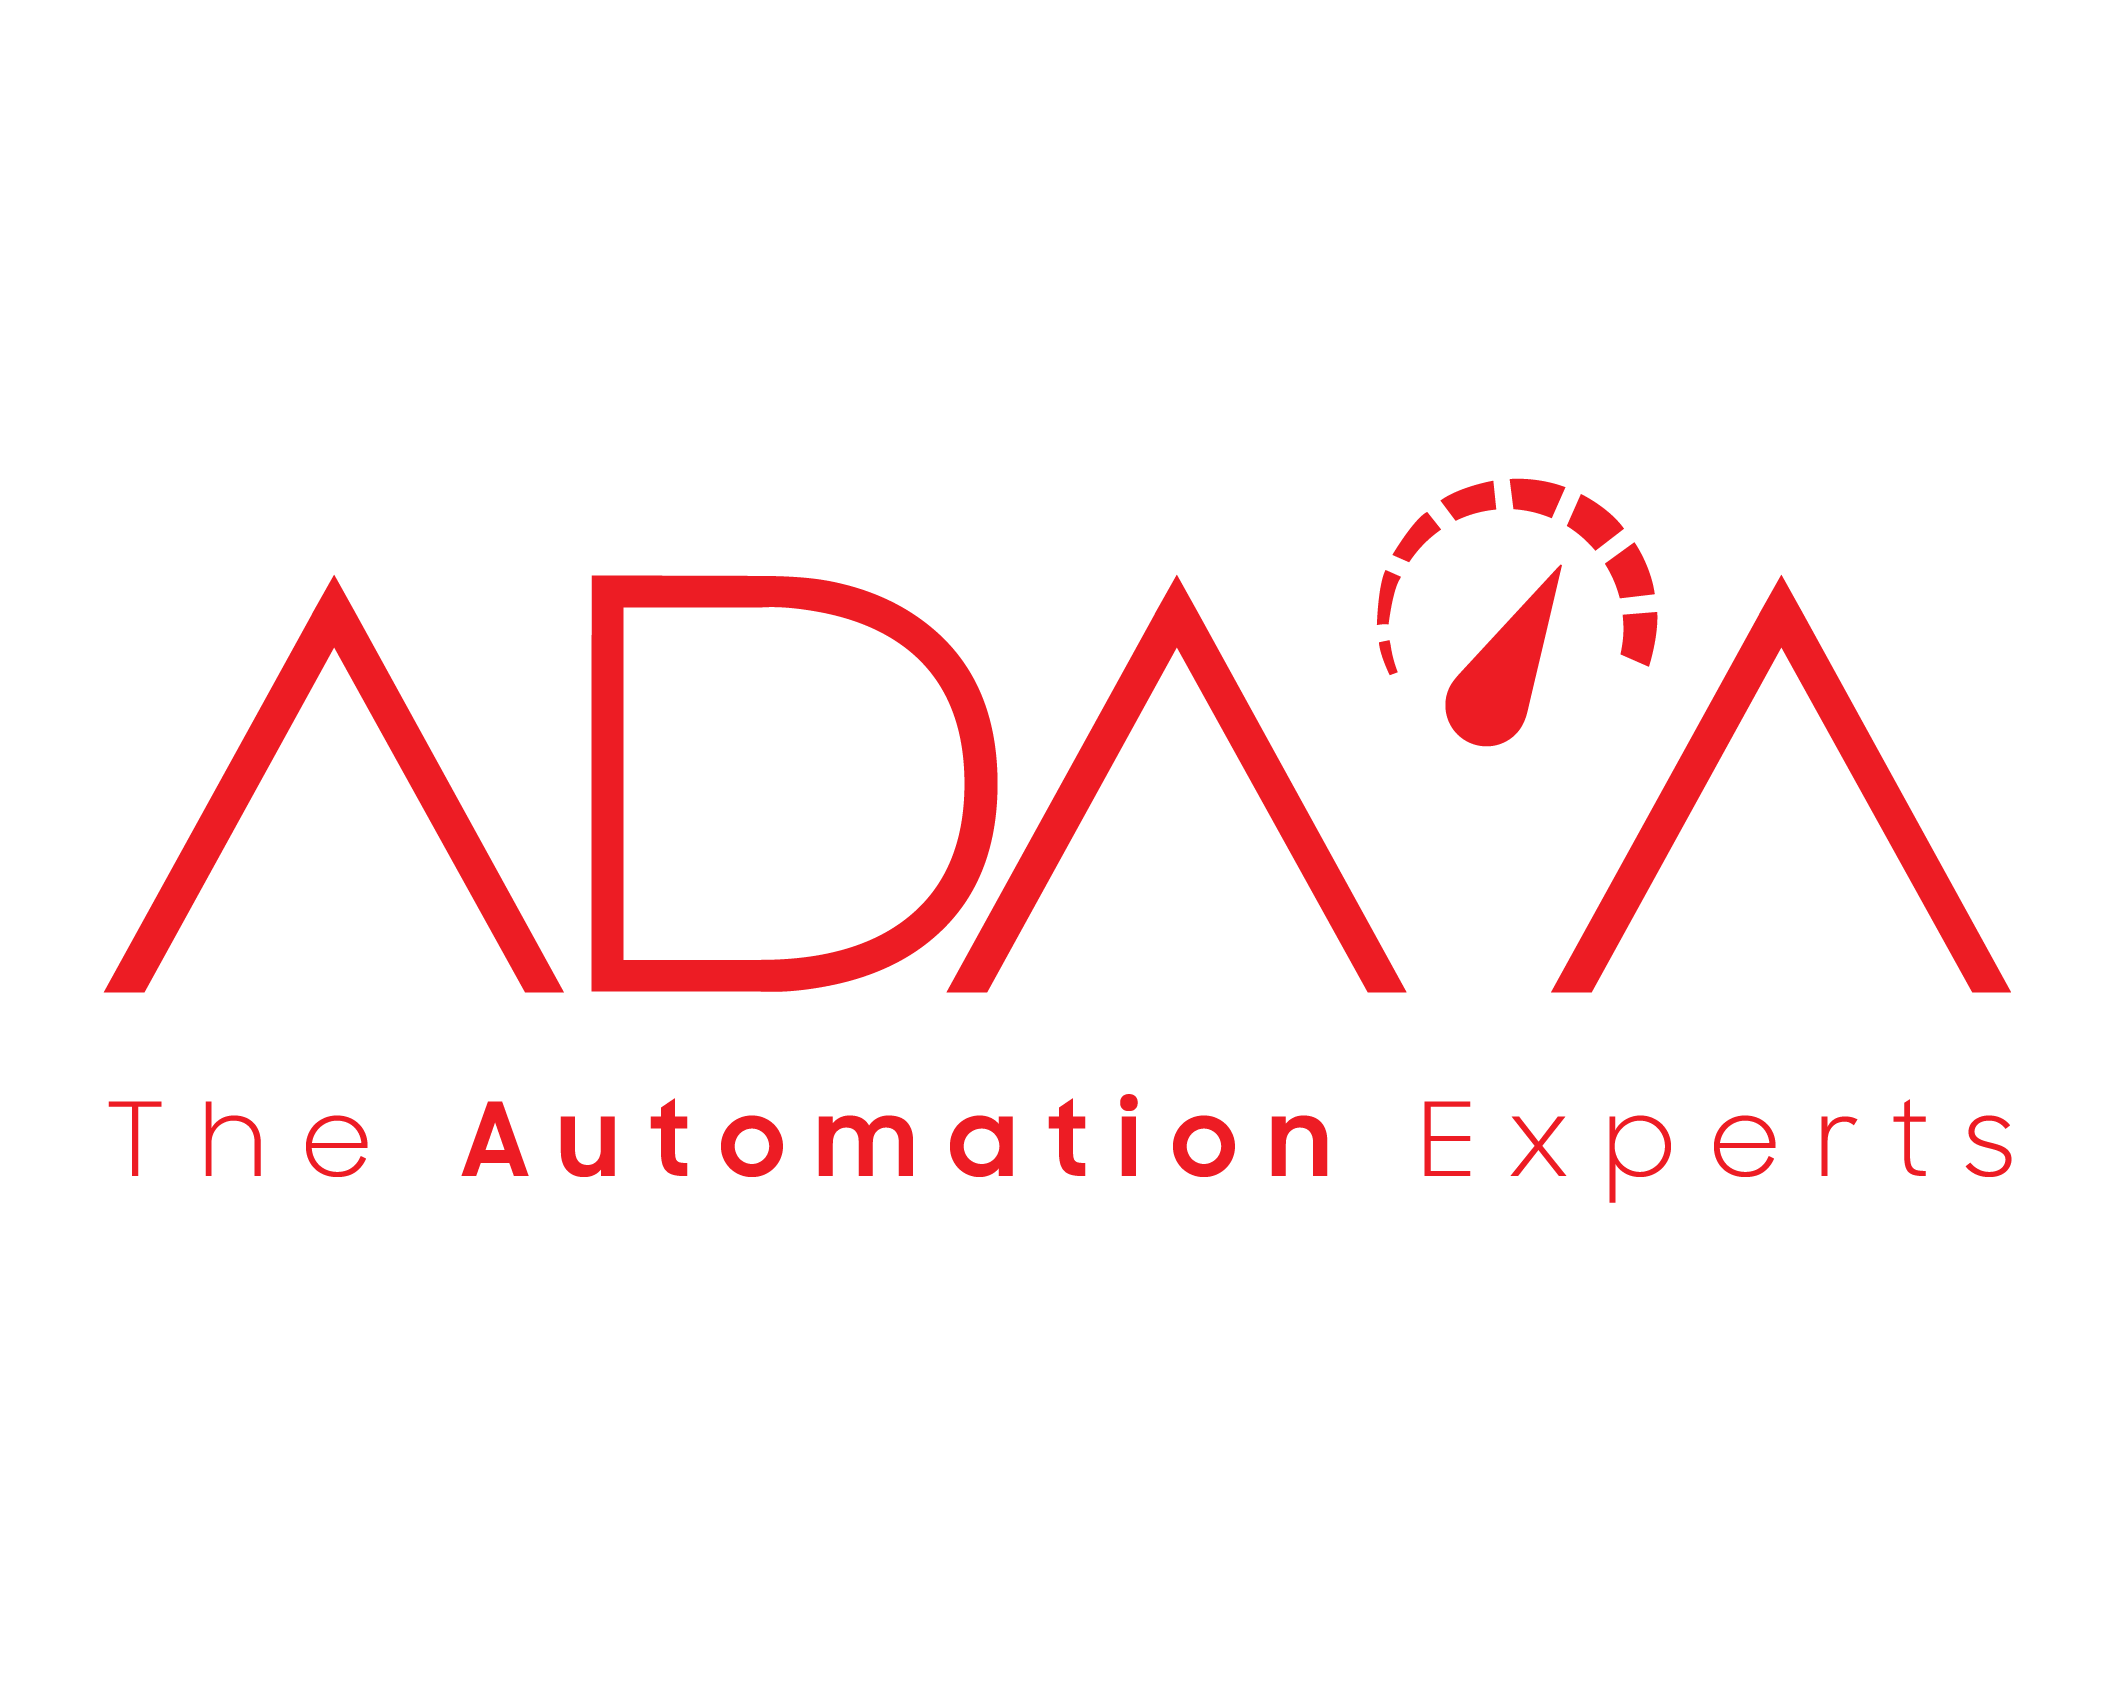 Logo ADAA Applications Company LLC